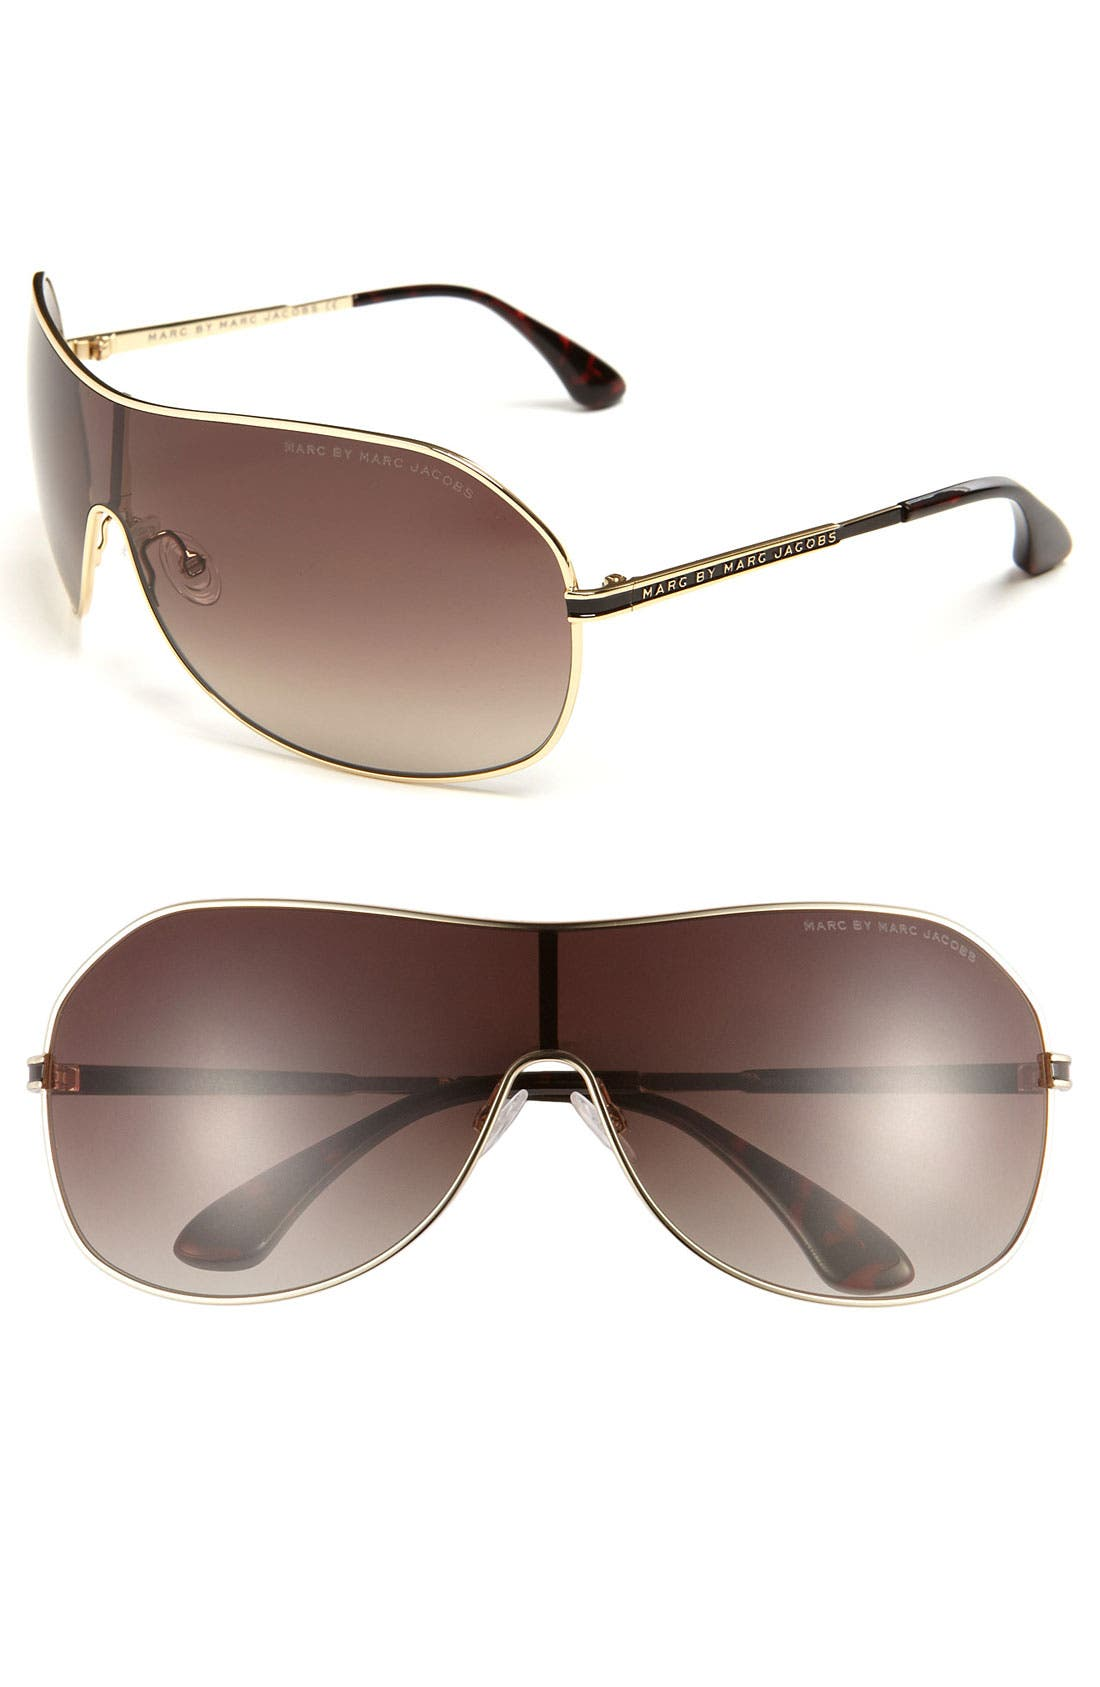 Alternate Image 1 Selected - MARC BY MARC JACOBS 72mm Shield Sunglasses